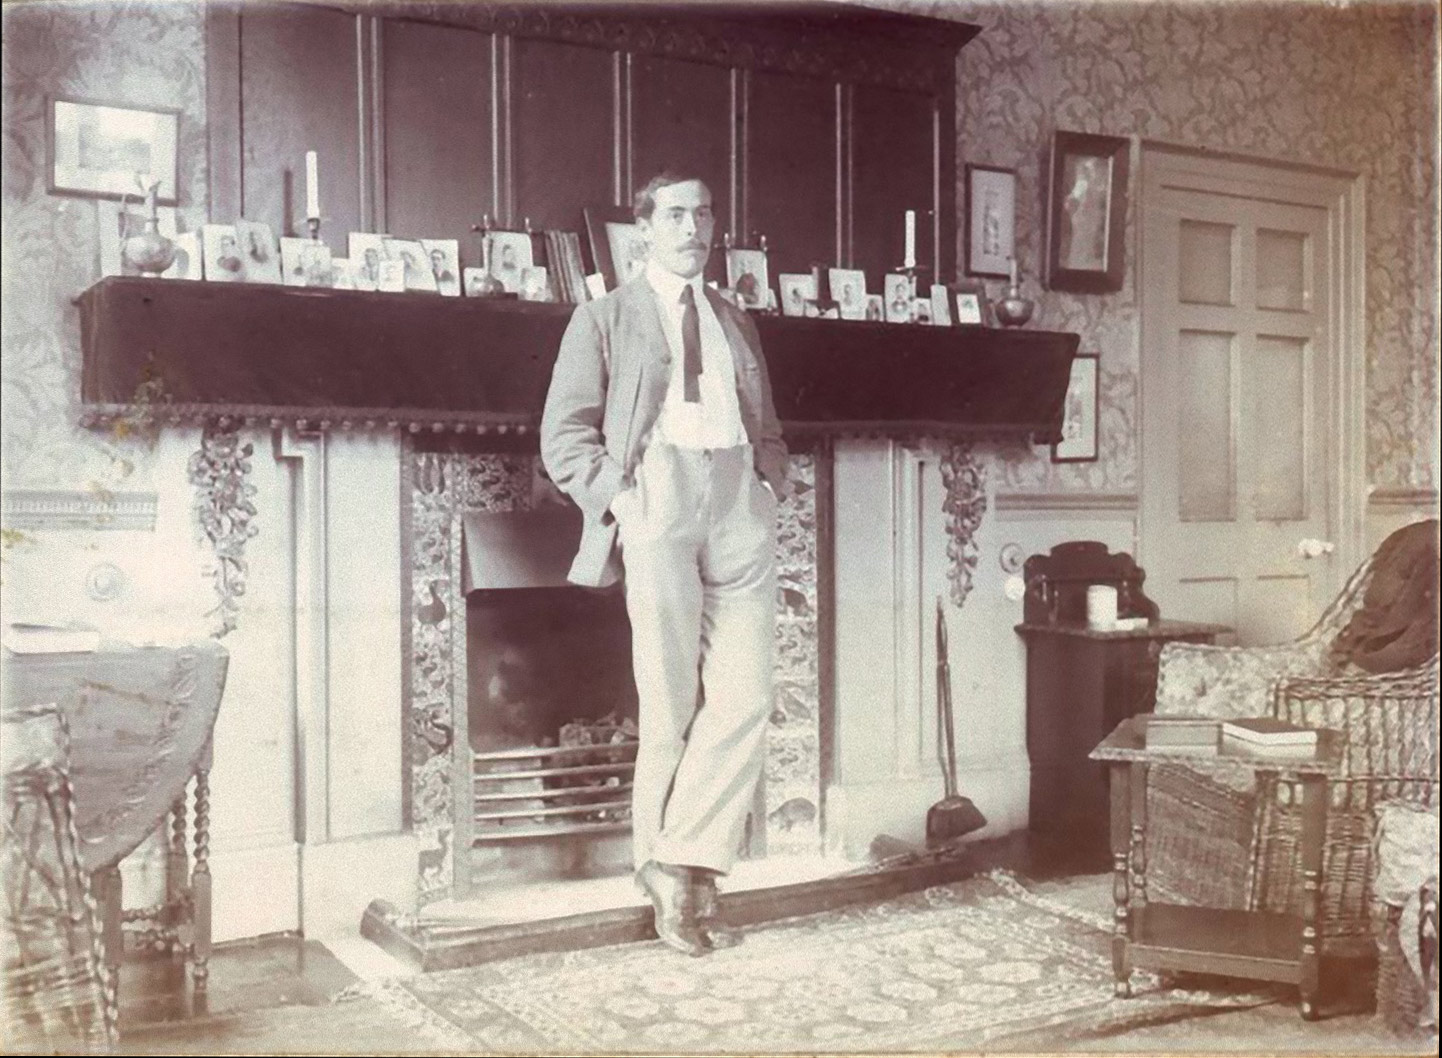 Lewis Carroll standing before his William De Morgan tile fireplace at Christ Church, Oxford